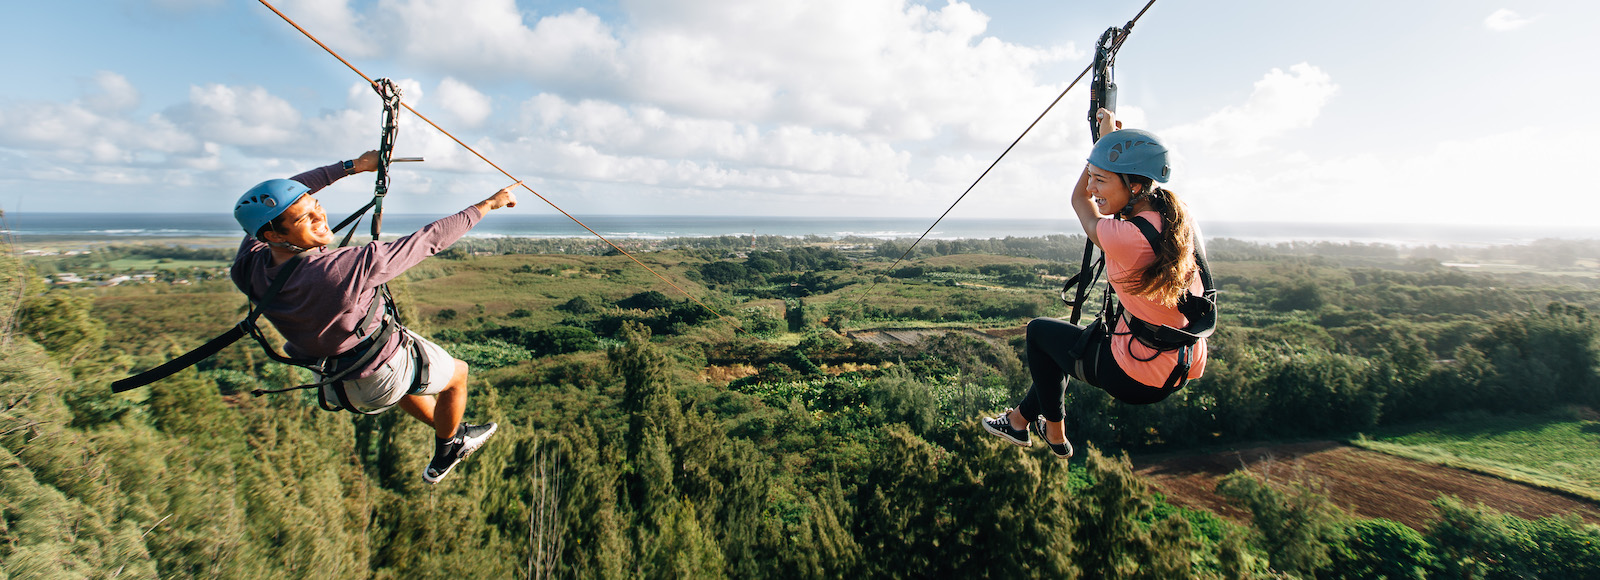 5 of the Best Things to Do in Oahu for Couples